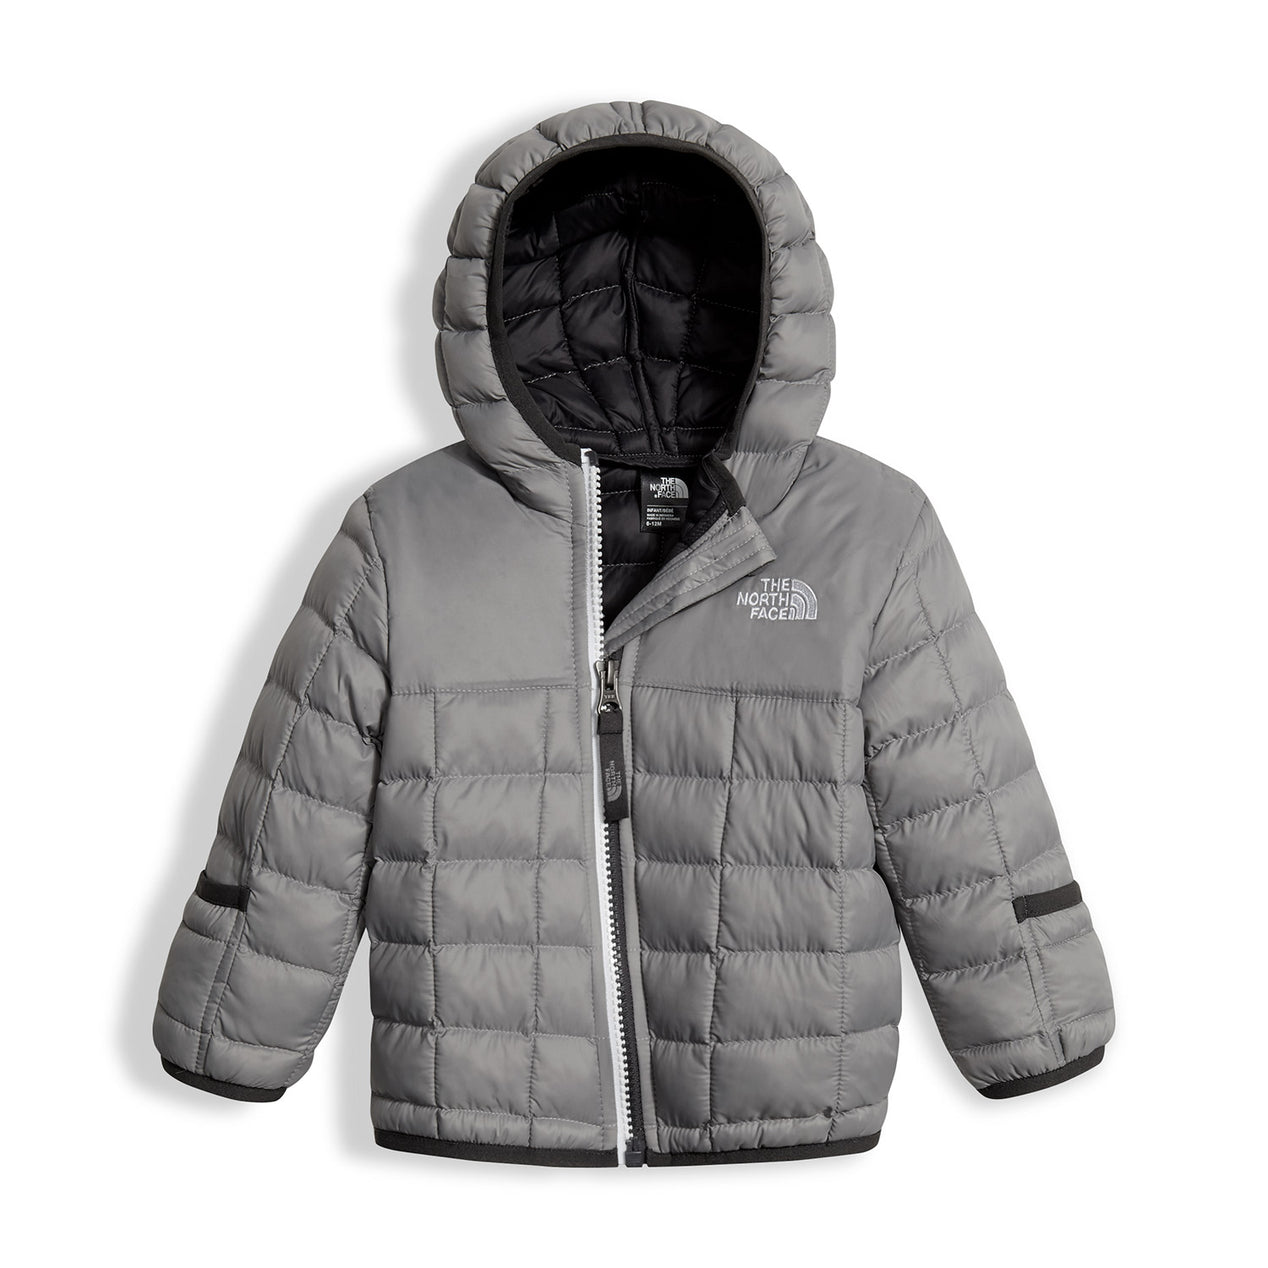 343b383b6 The North Face Infant Thermoball Hoodie Past Season